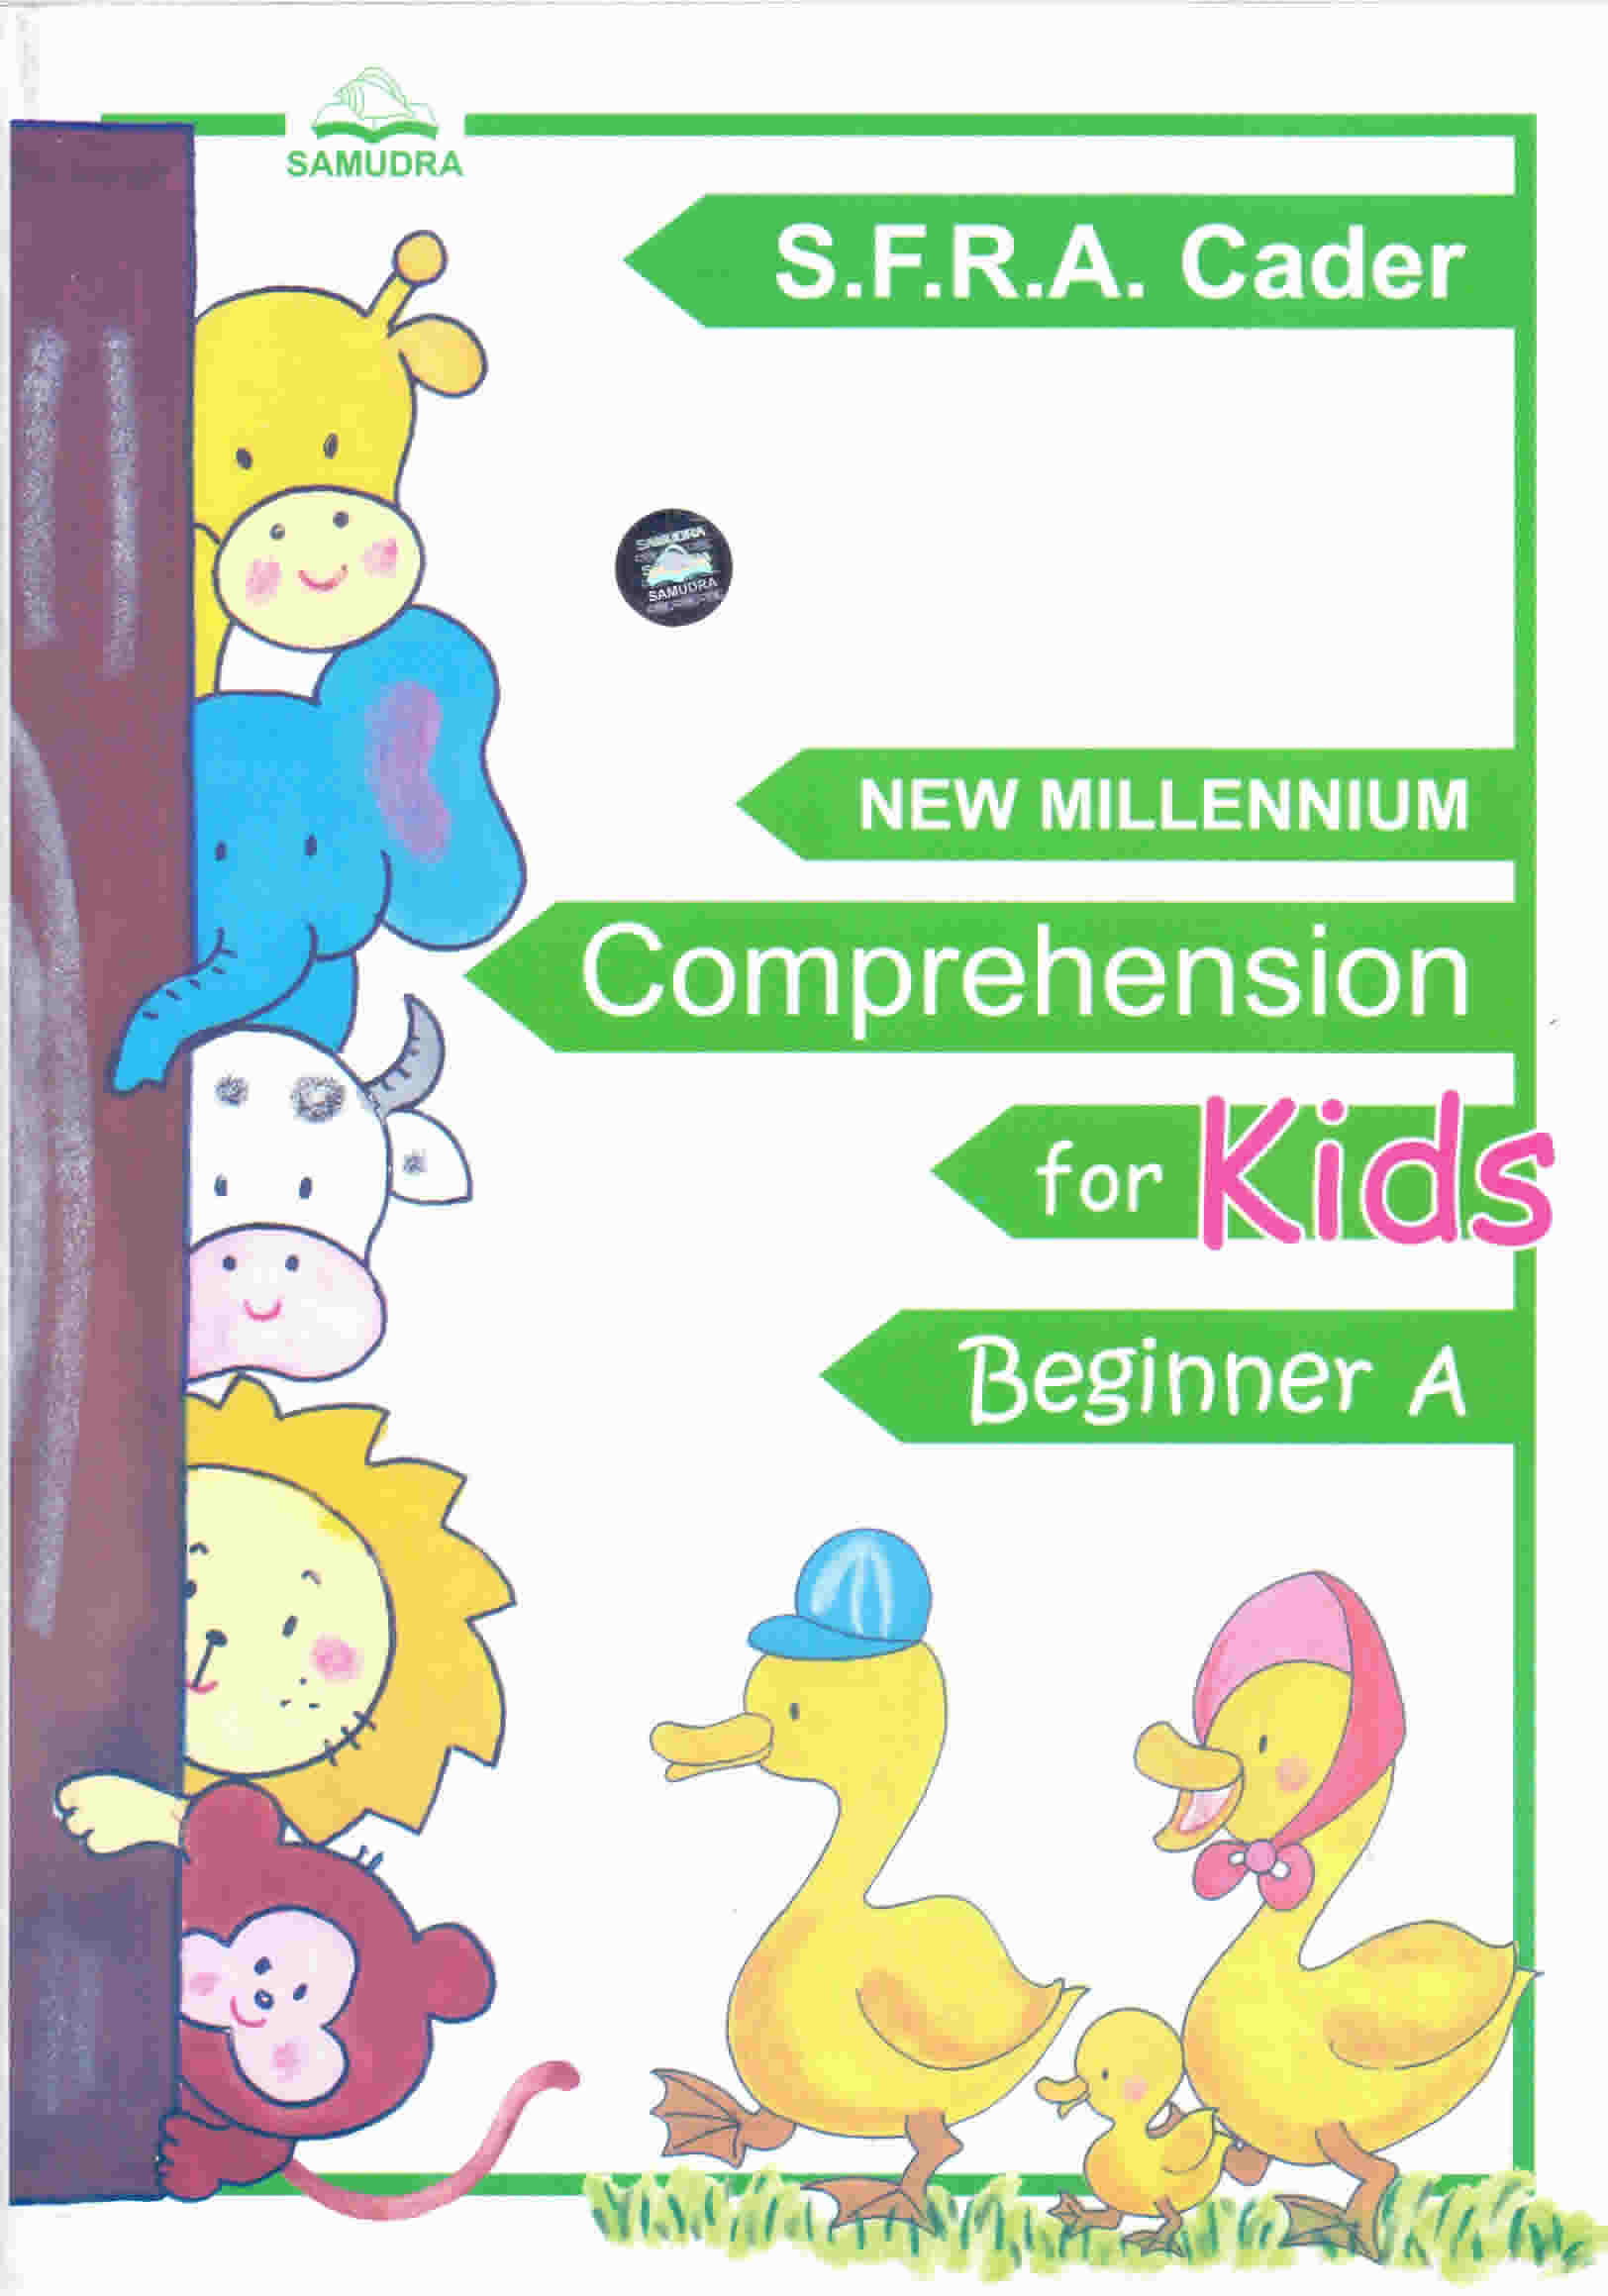 NEW MILLENIUM COMPREHENSION